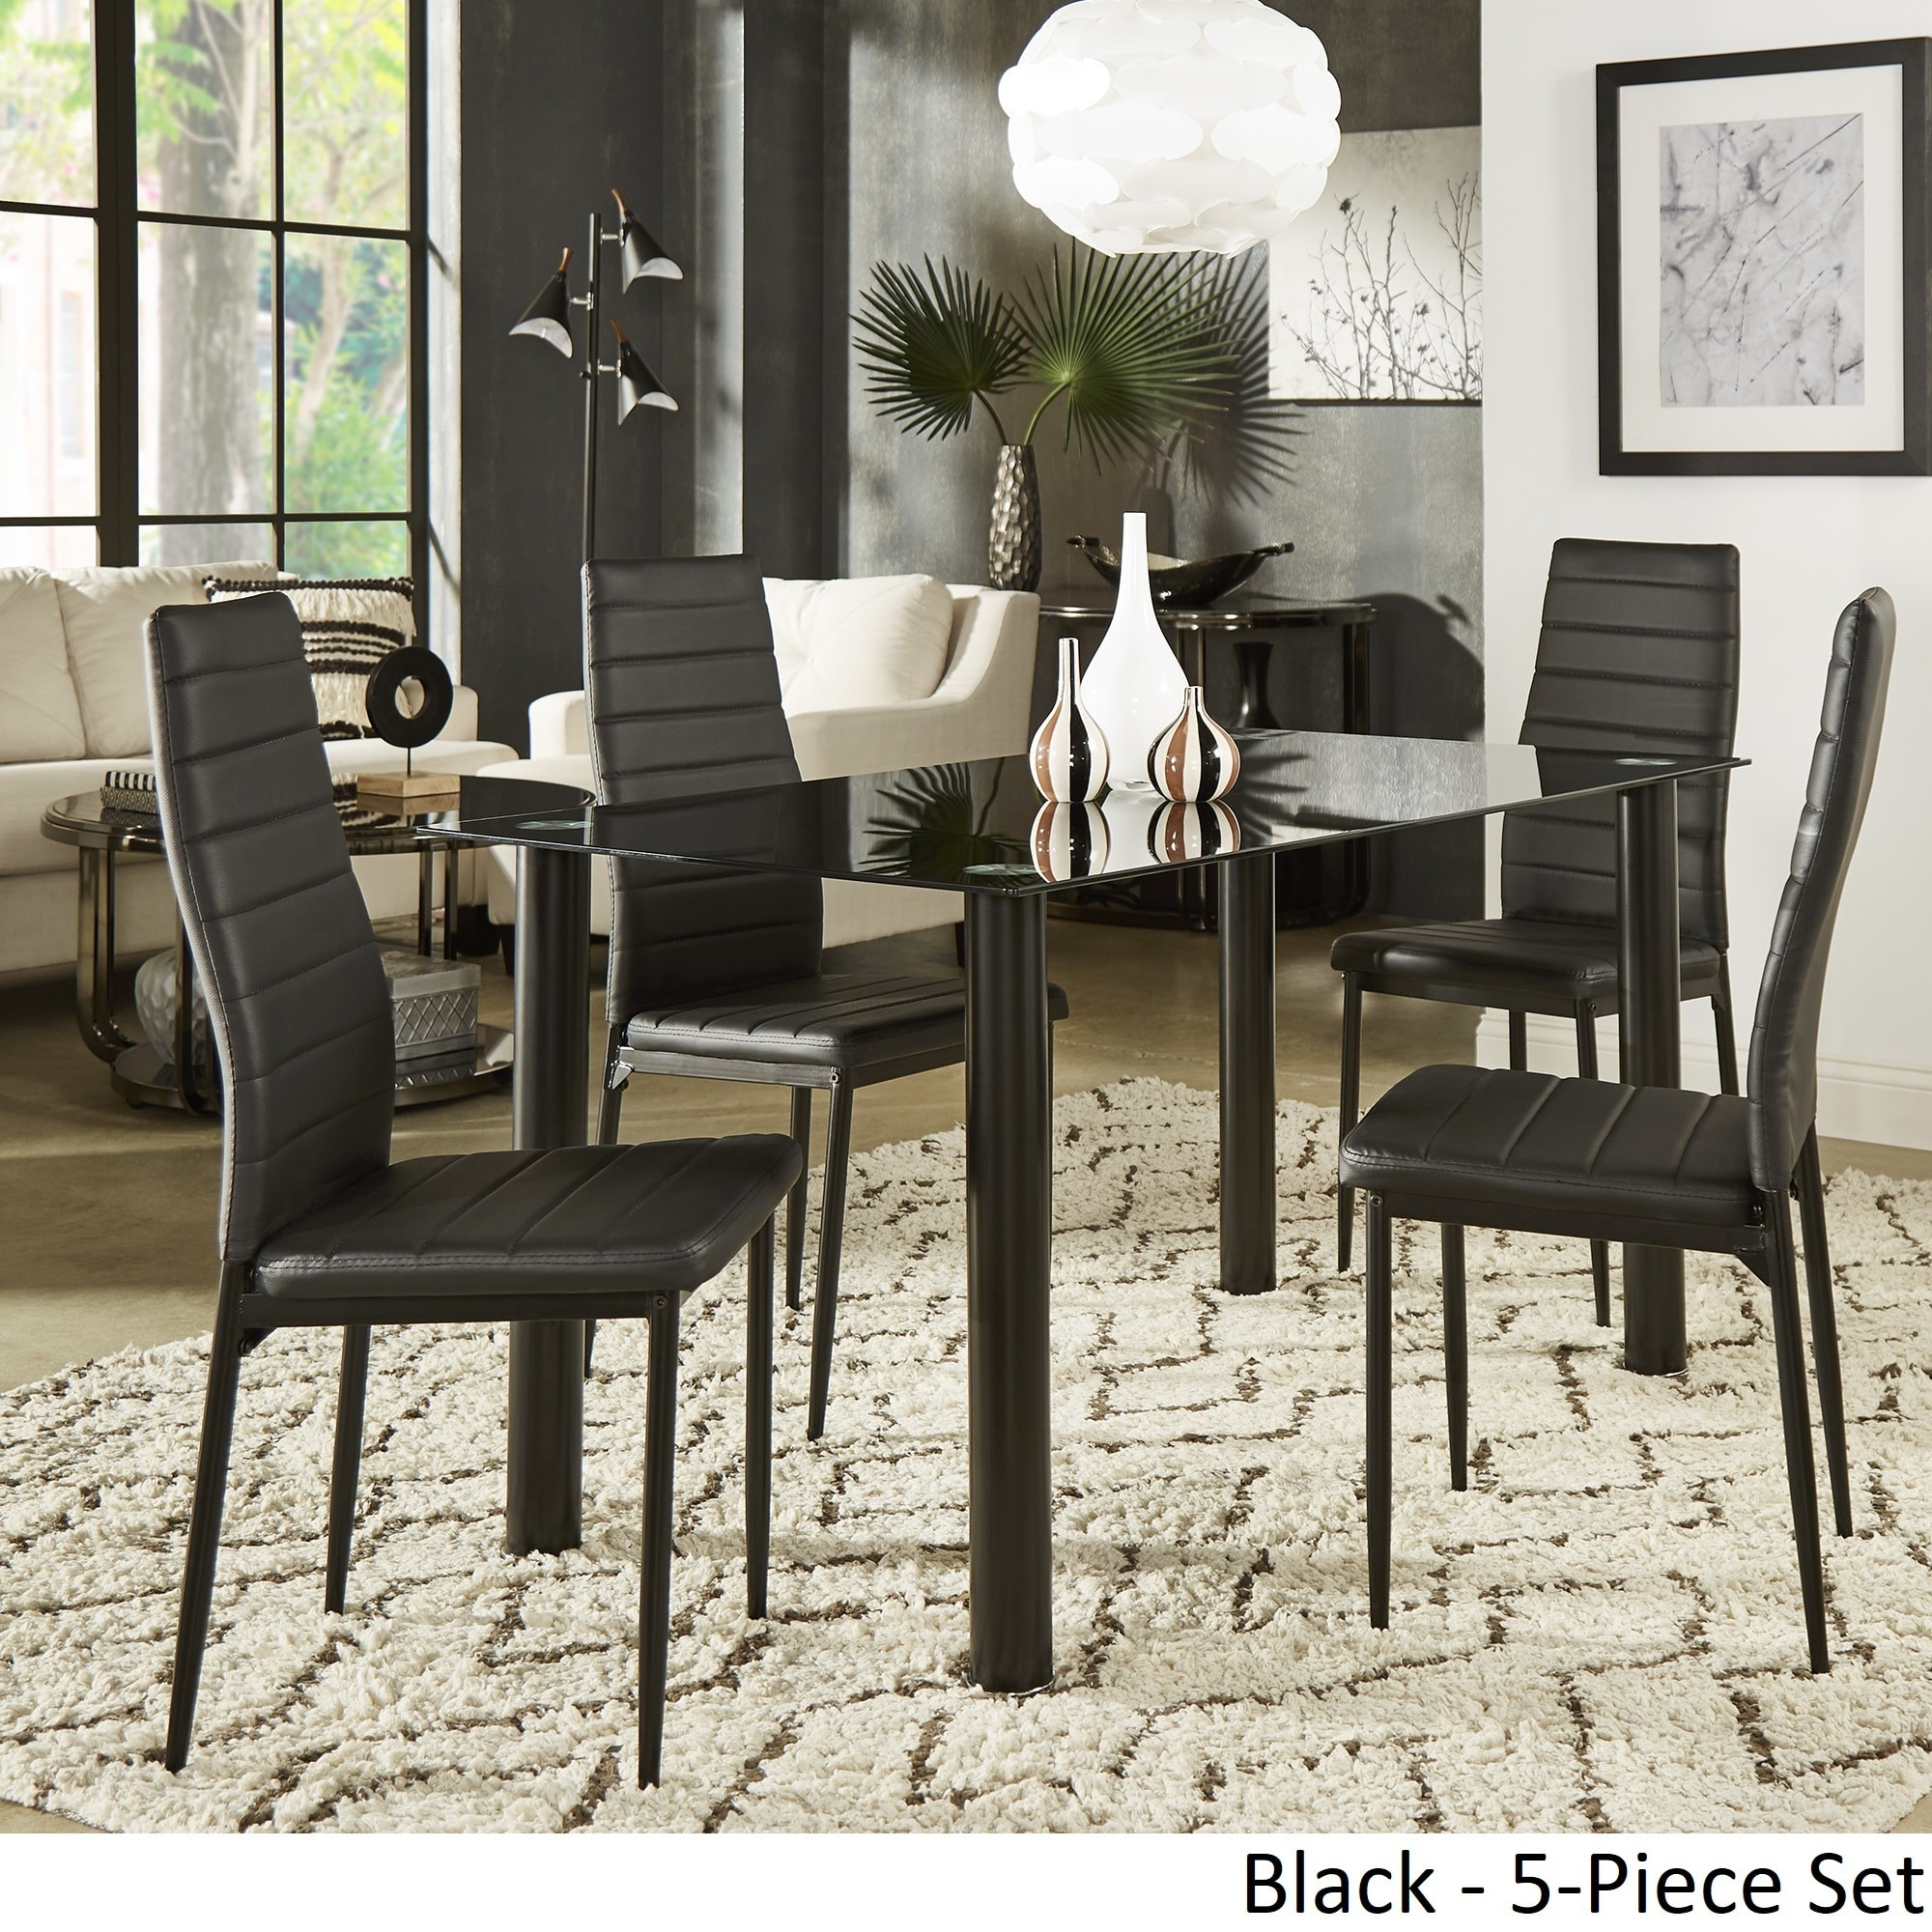 Milo Contemporary Metal And Glass Dining Set   Faux Leather Chairs By  INSPIRE Q Bold   Free Shipping Today   Overstock.com   24628878